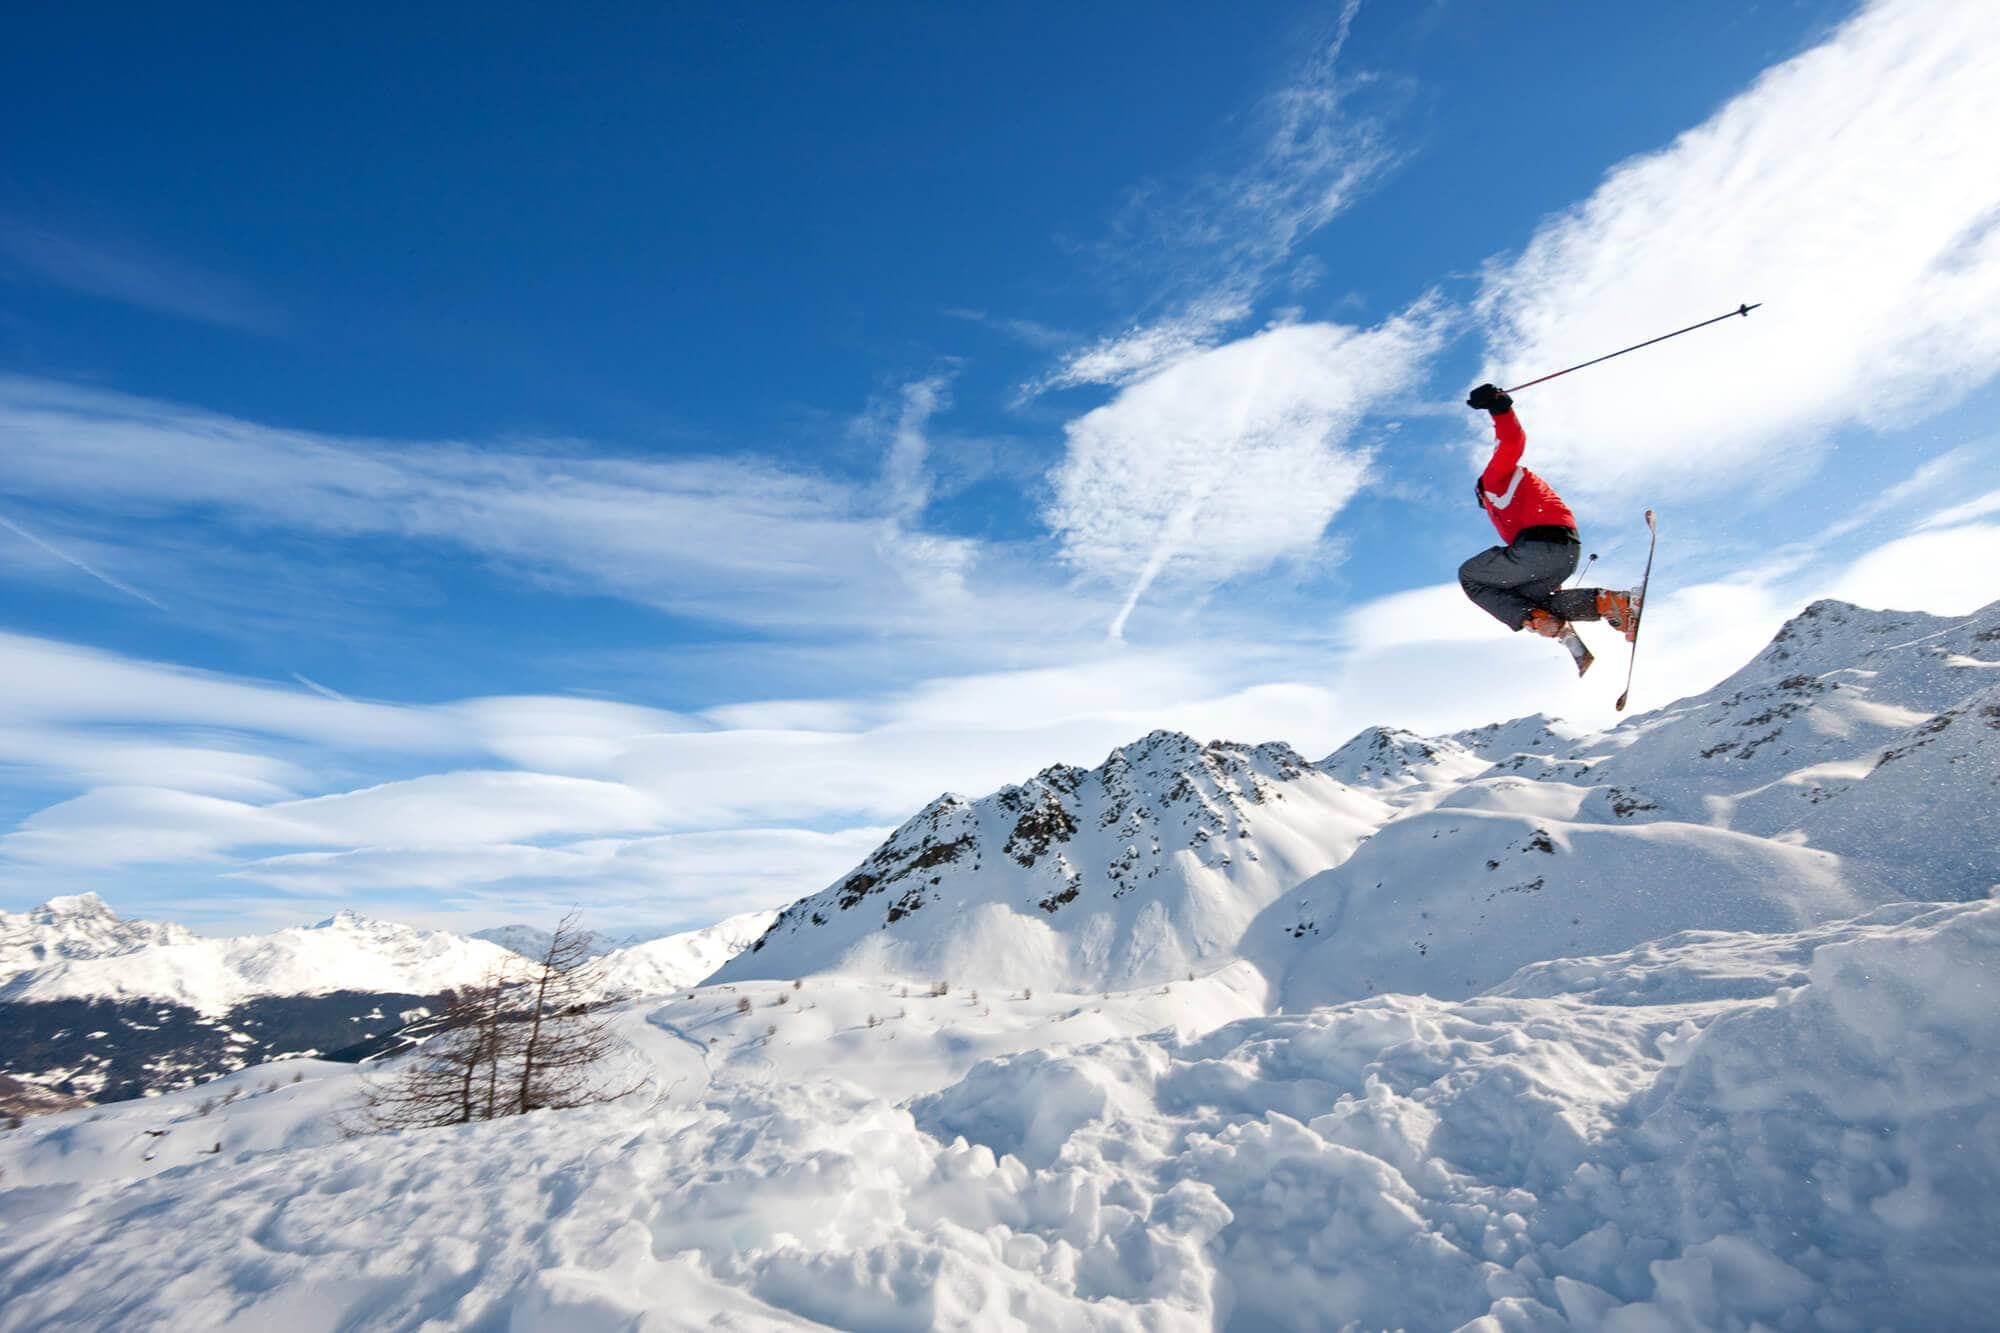 Norwegian skier jumping on snow-clad mountain #norway